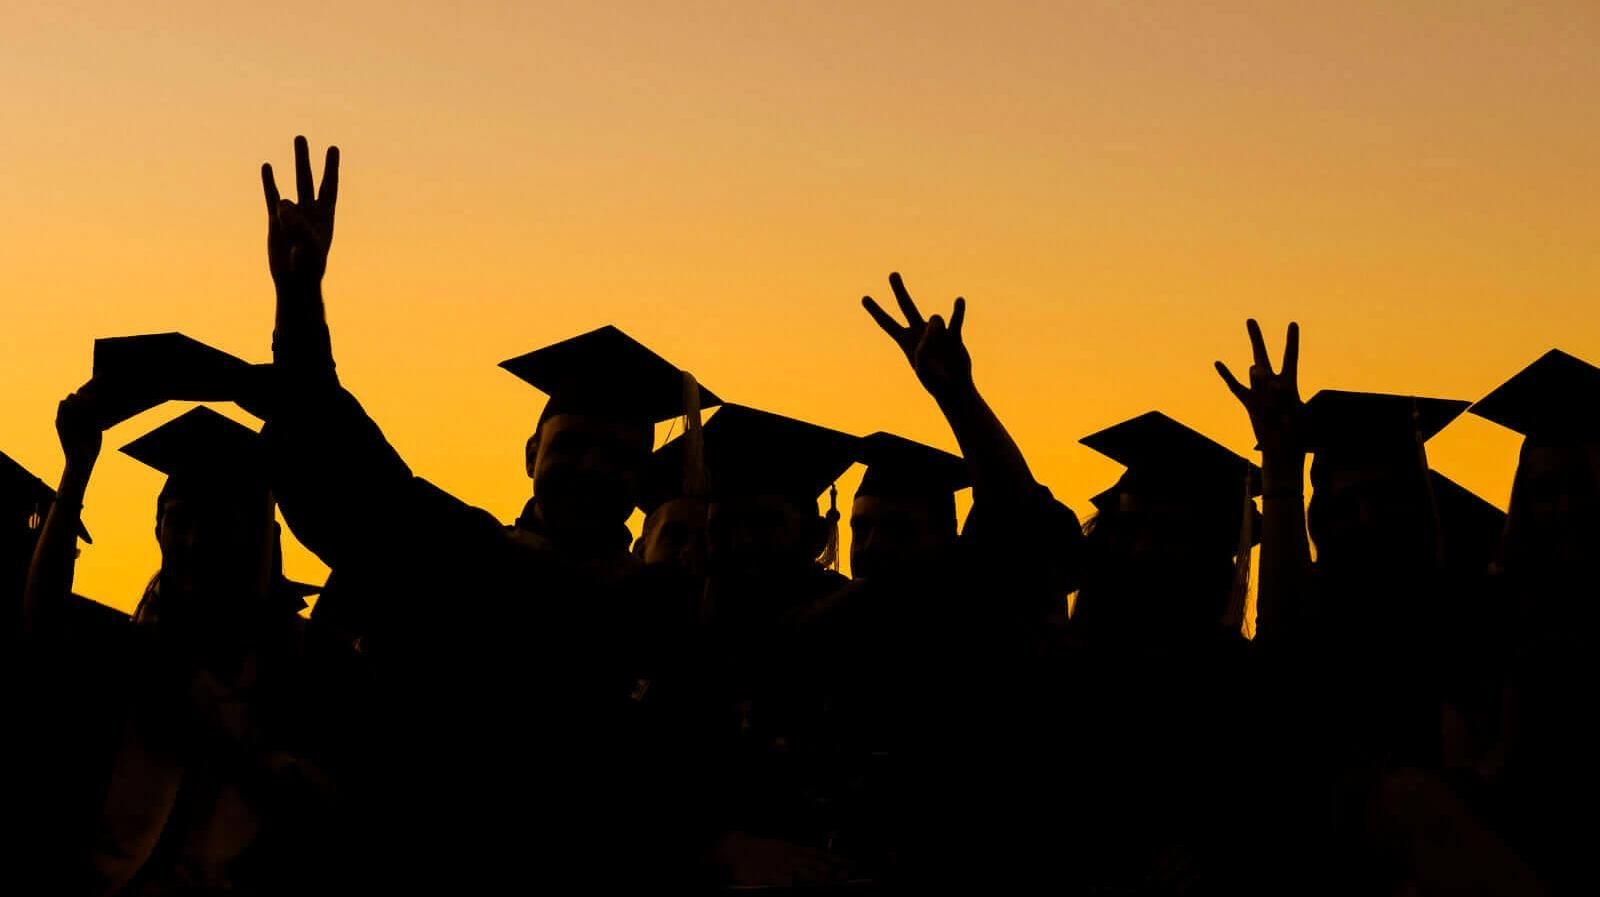 Forks up! Grads in mortarboards at dusk